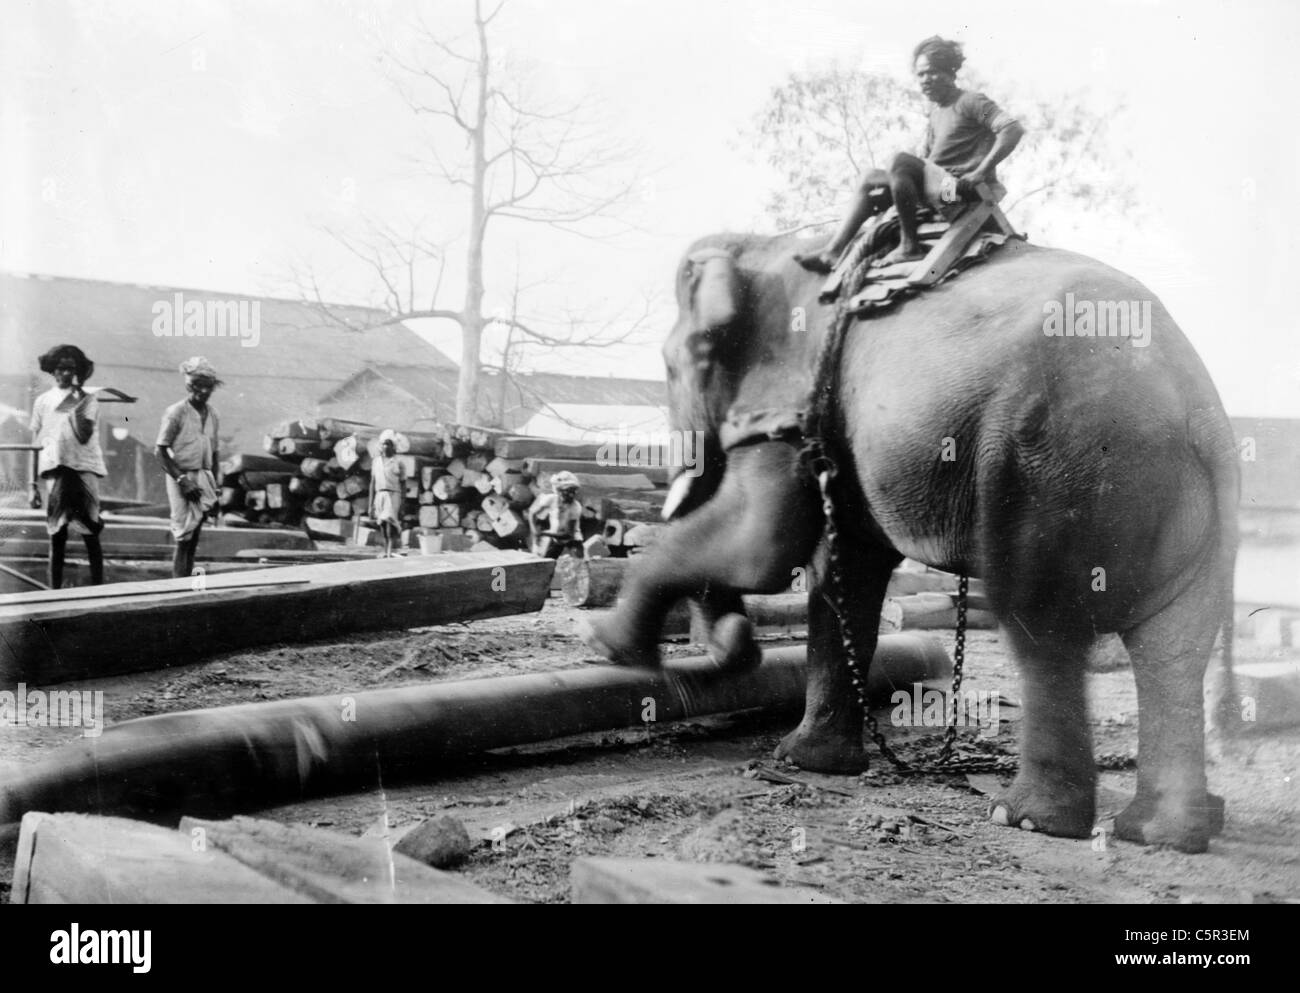 Elephant Working India Stock Photo Royalty Free Image